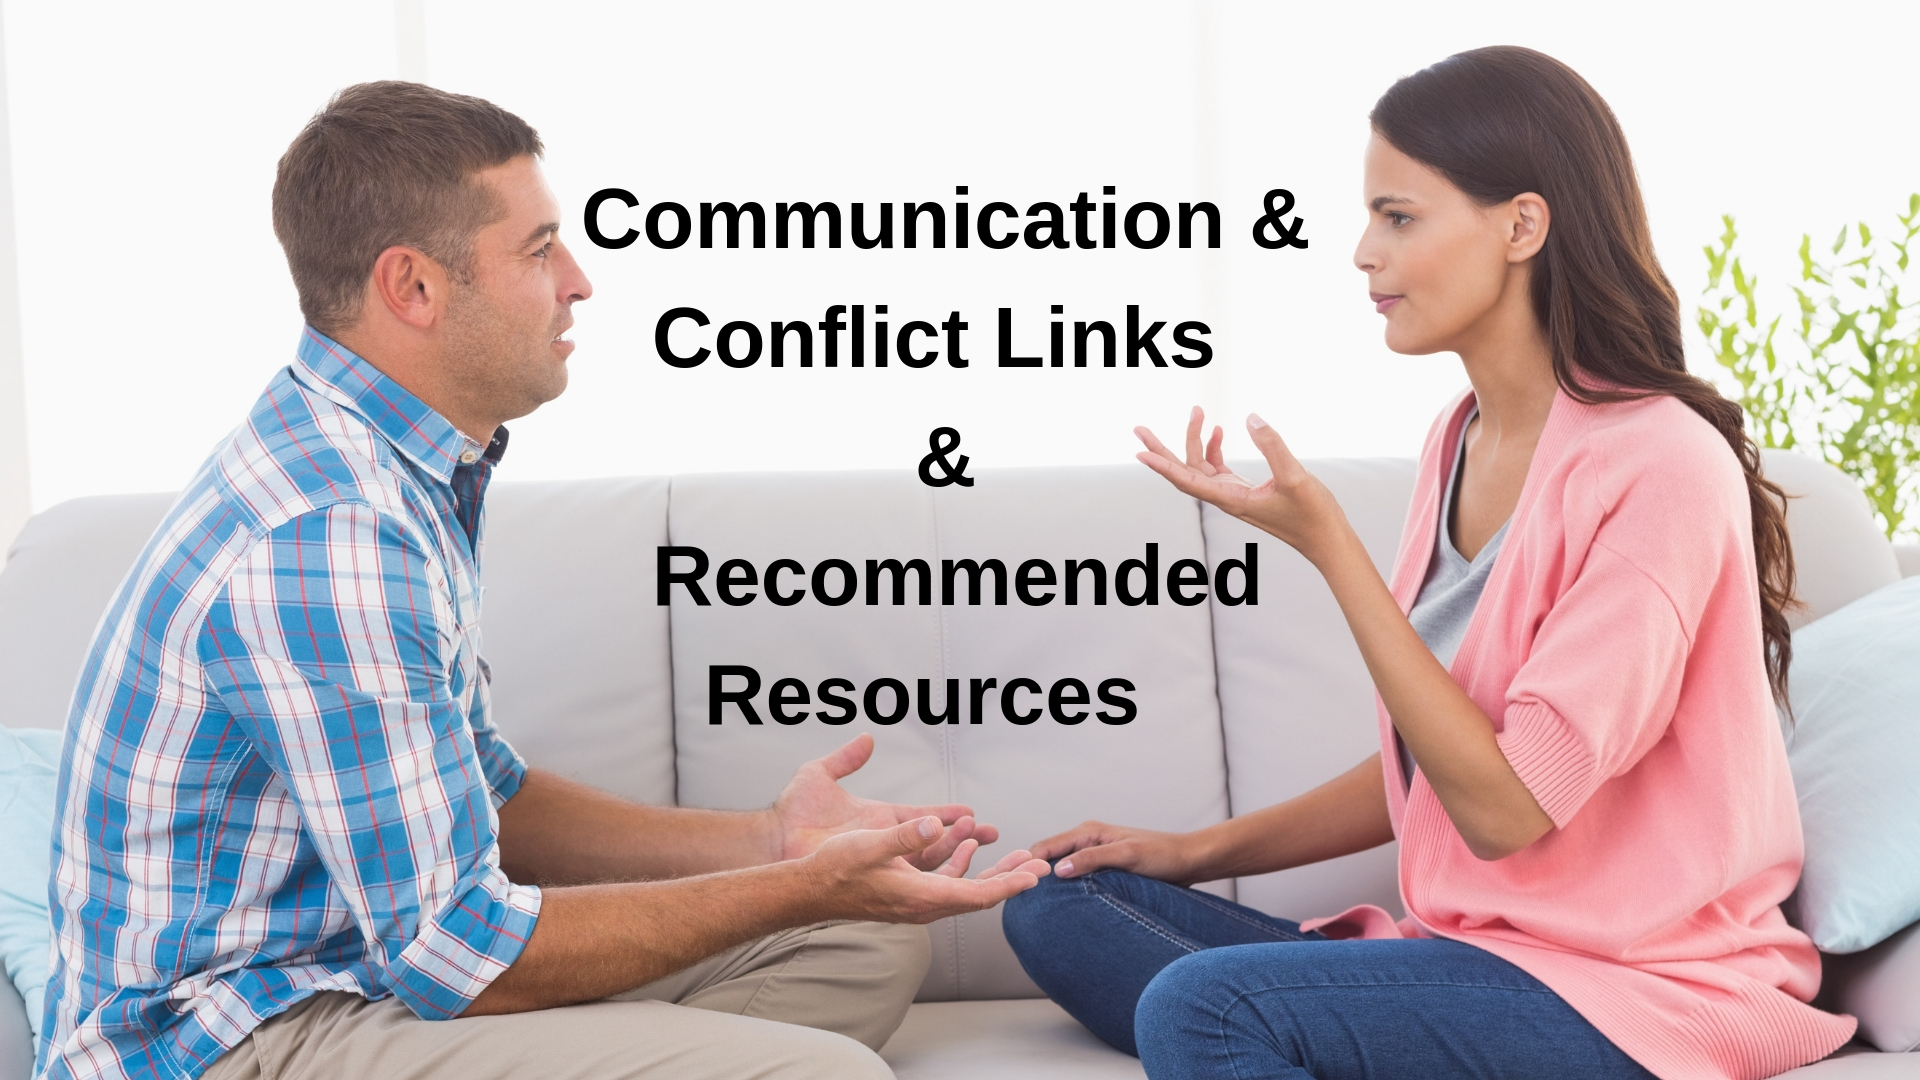 Communication & Conflict Links-3 - Adobe Stock - Canva